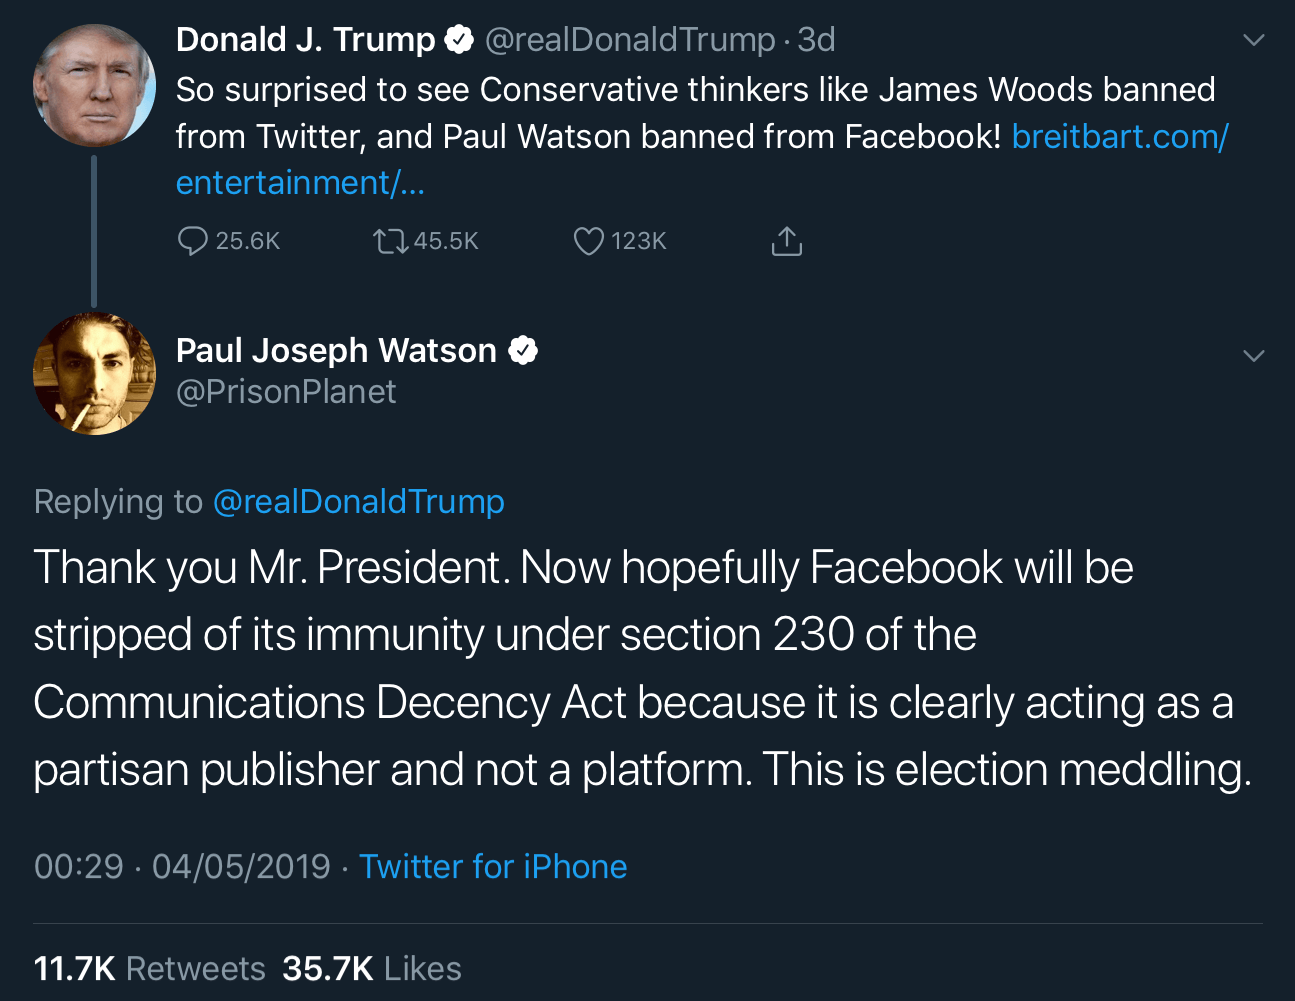 Paul Joseph Watson replying to President Trump on Twitter and accusing Facebook of election meddling.